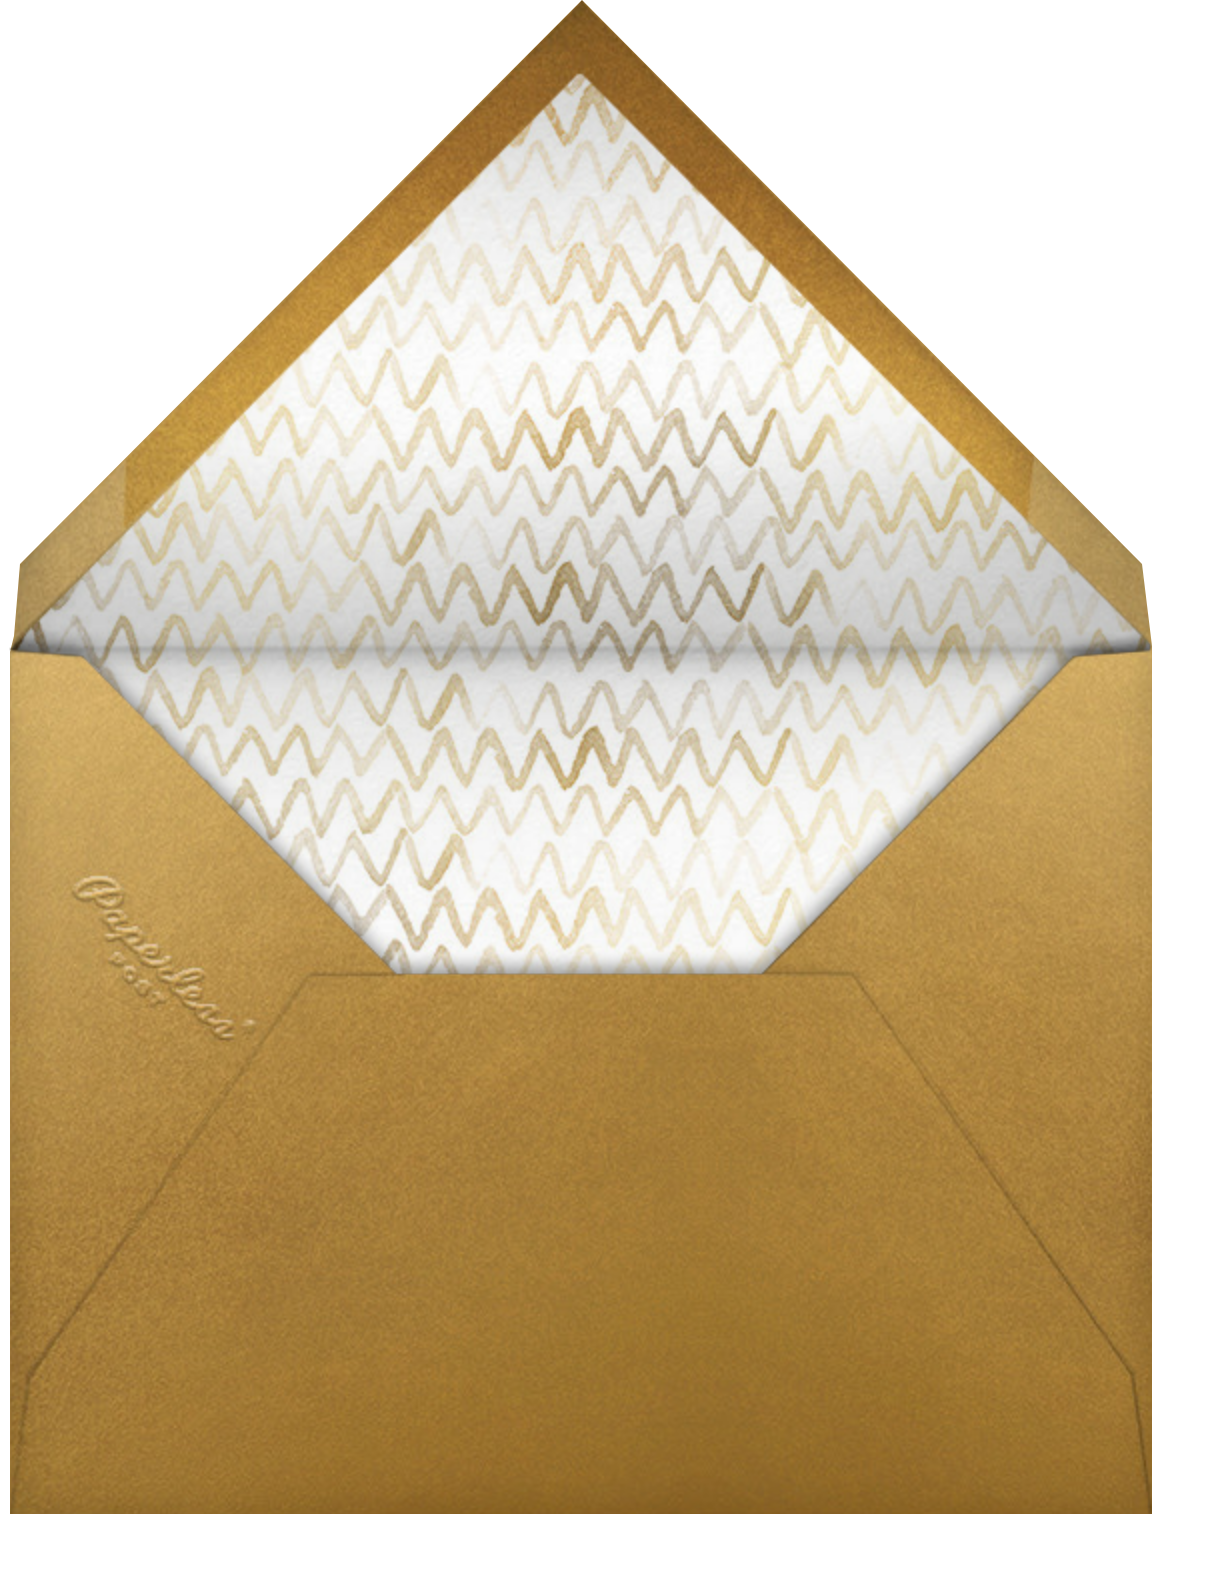 The Golden Fleece - Paperless Post - Company holiday cards - envelope back